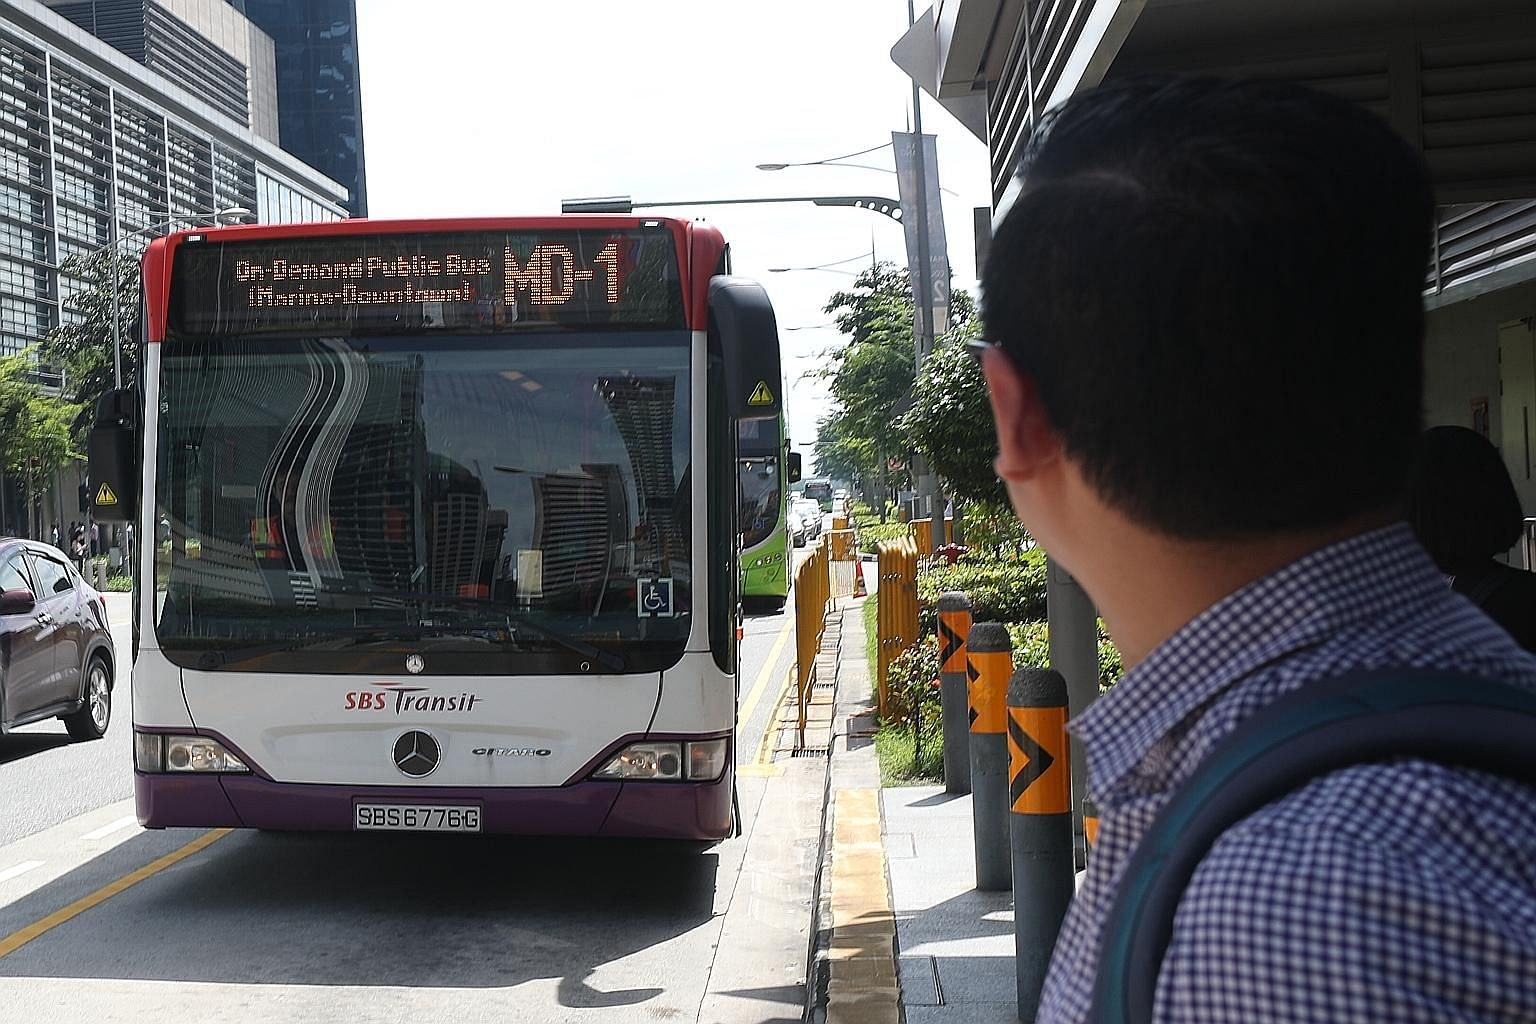 Journalist Zhaki Abdullah (left) booked an on-demand public bus in the Marina Bay area using the BusNow app yesterday, while Mr Low Chong Gee (below), 50, a shipping agent, tried out the same app.